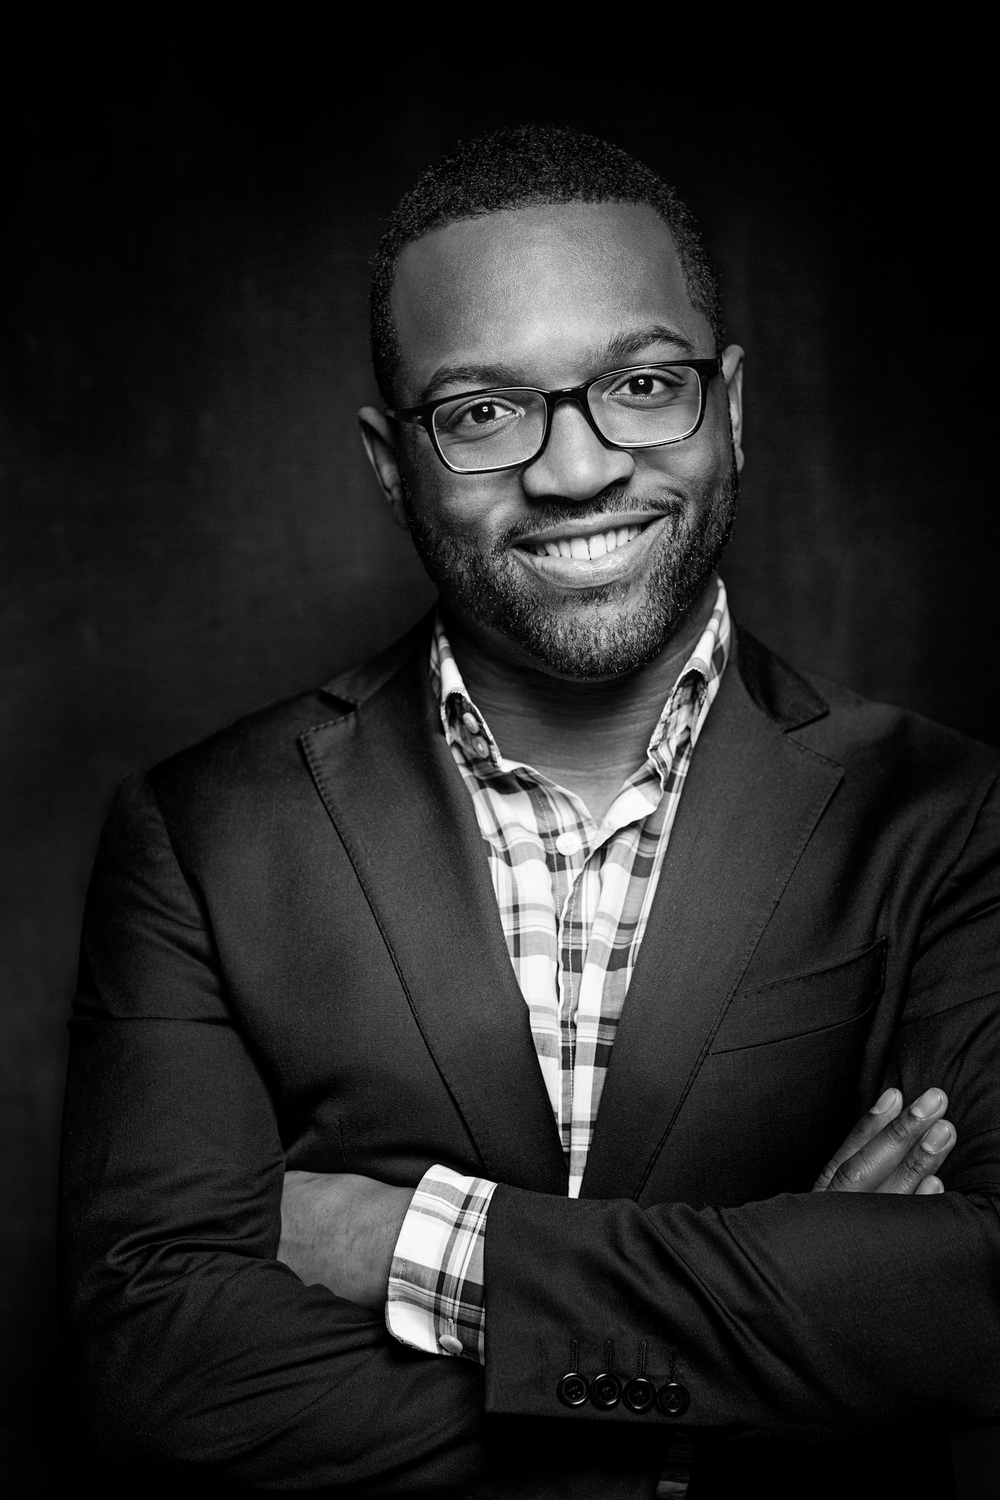 Baratunde Looking Like An Anchor (B&W) high resolution